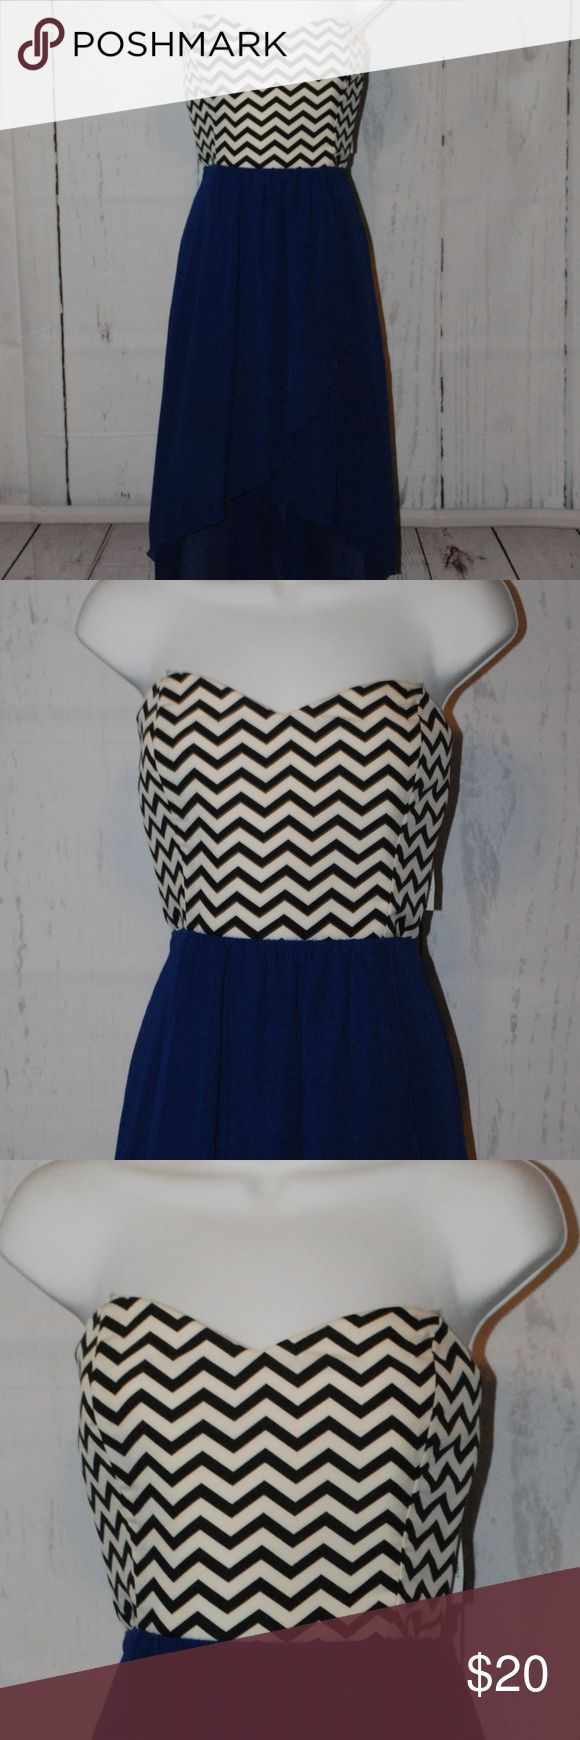 Black White Royal Blue Chevron high low dress XL Black White Royal Blue Chevron high low dress XL Brand new with tags Purchased from sears Adorable style Beautiful bright blue color Dresses High Low